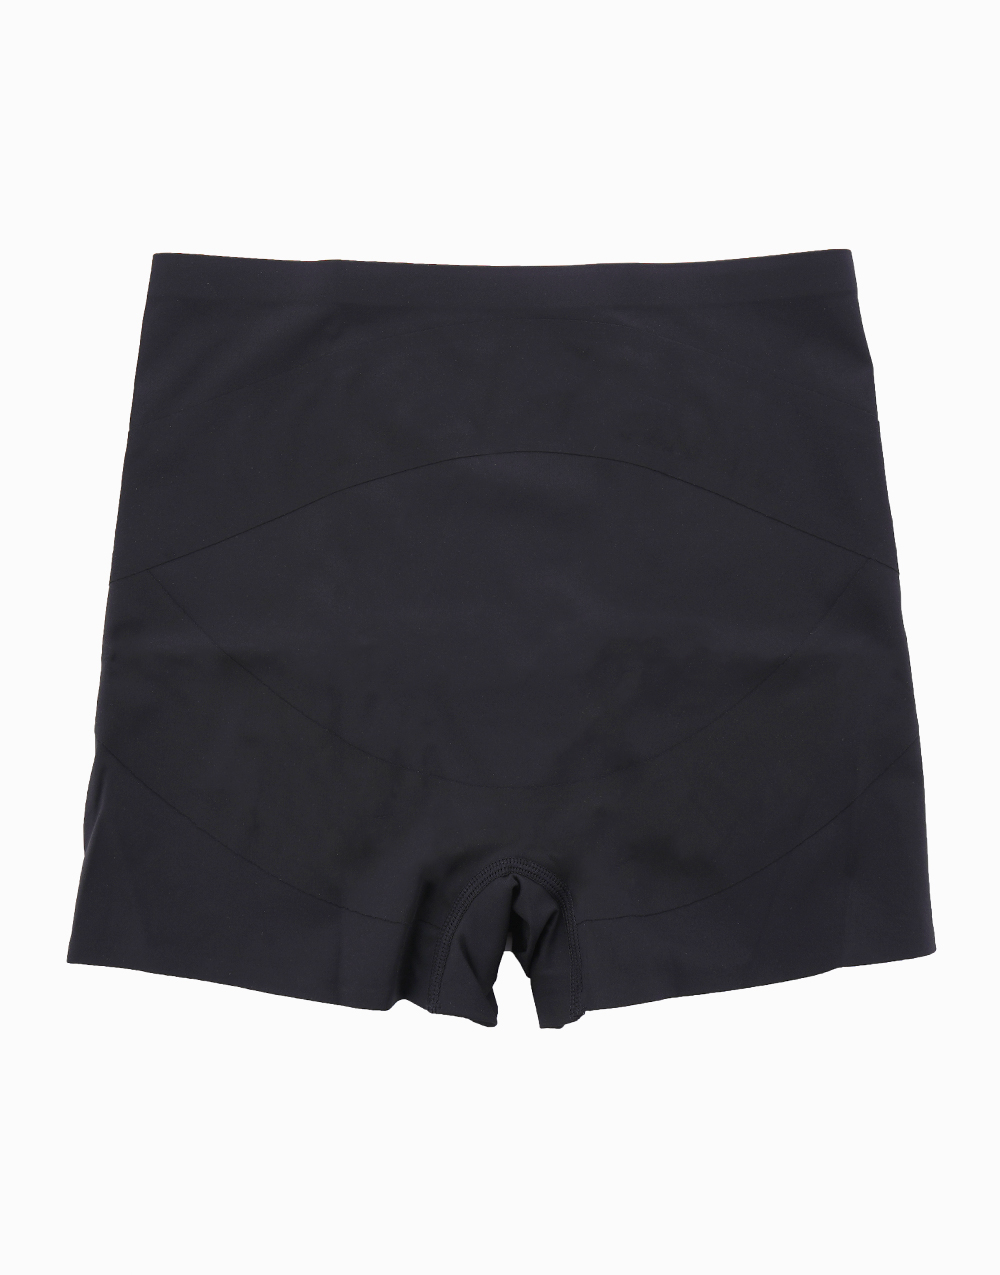 Booty Trainer Butt & Hip Compression Shorts in Black by Jellyfit | XL